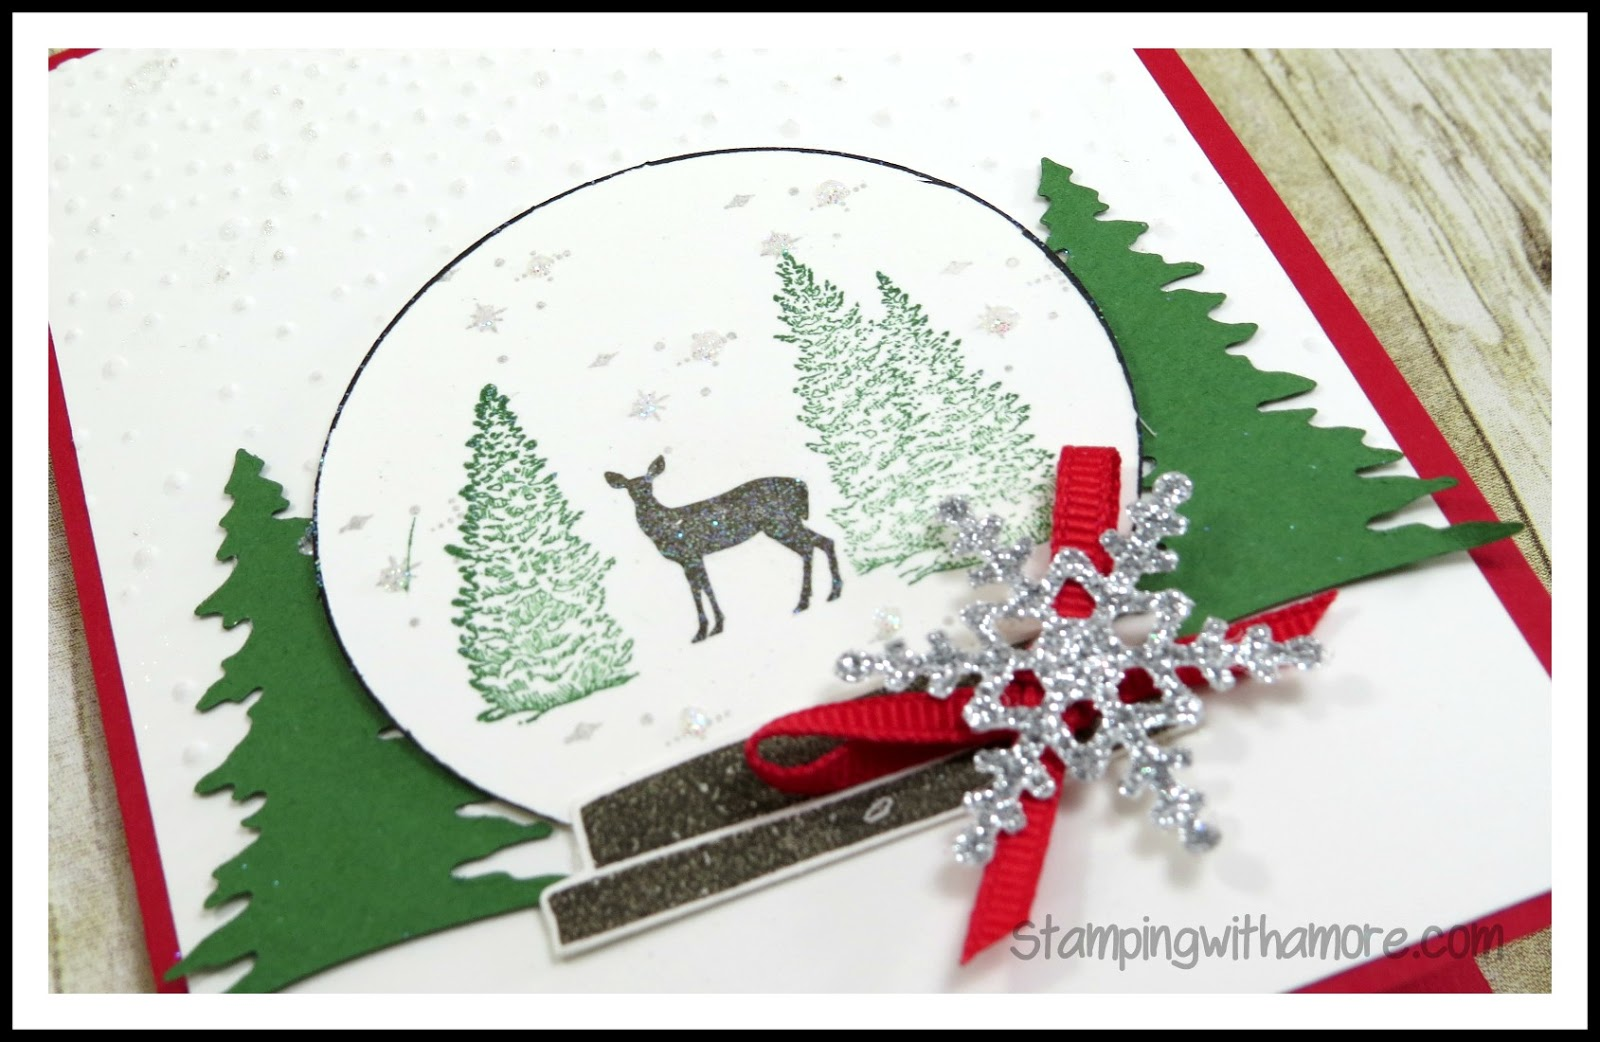 Stampingwithamore: CHRISTMAS SNOW GLOBE CARD